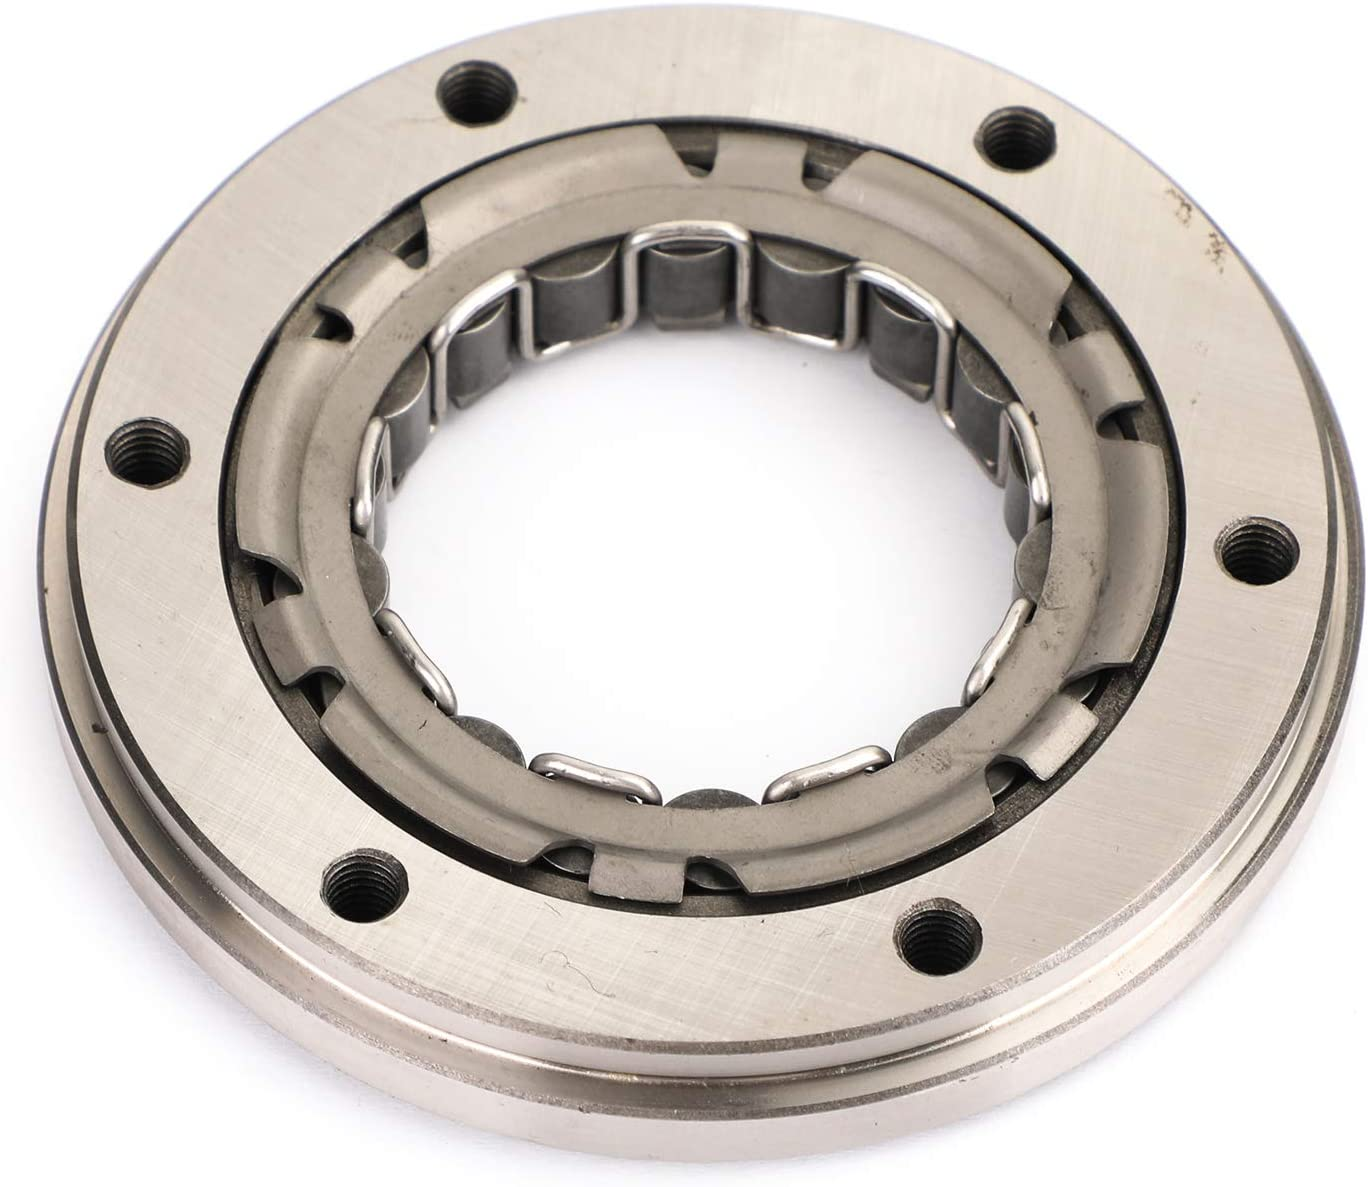 Topteng Challenge the lowest price of Japan Motorcycle Starter Clutch Free shipping Way Sprag Bearing One